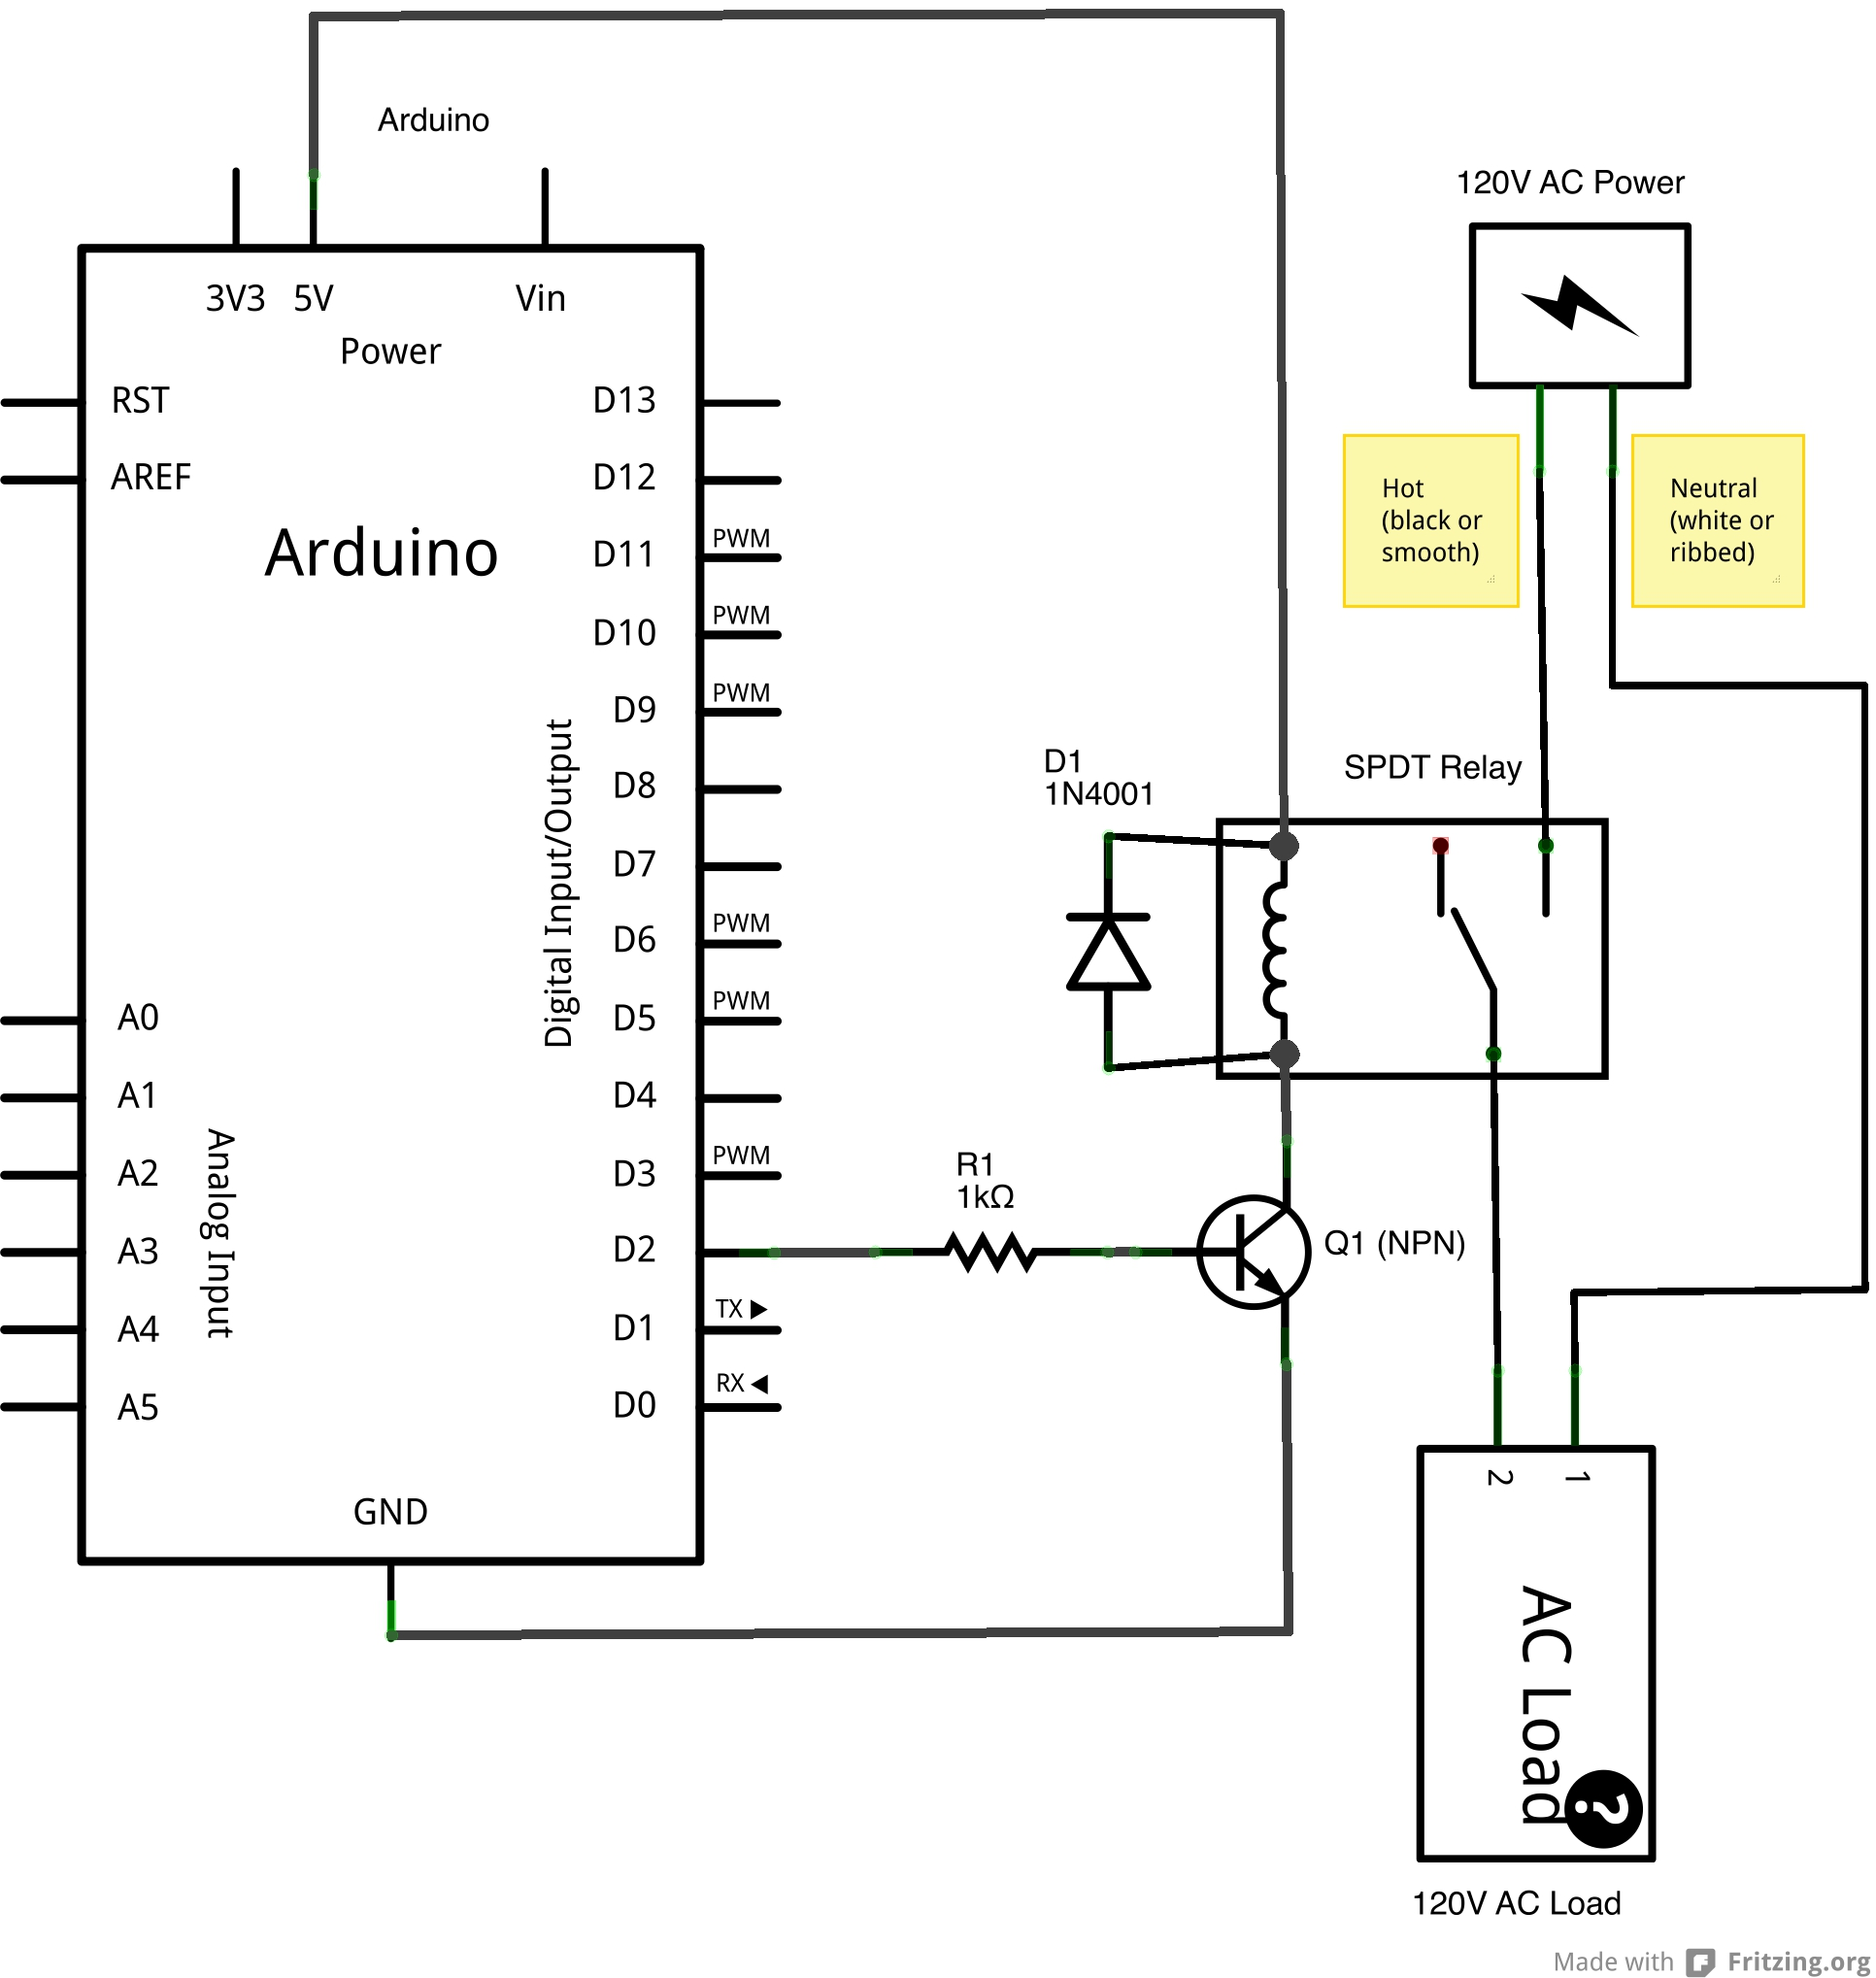 Wiring Diagram For A Spdt Relay : V spdt relay eric j forman teaching